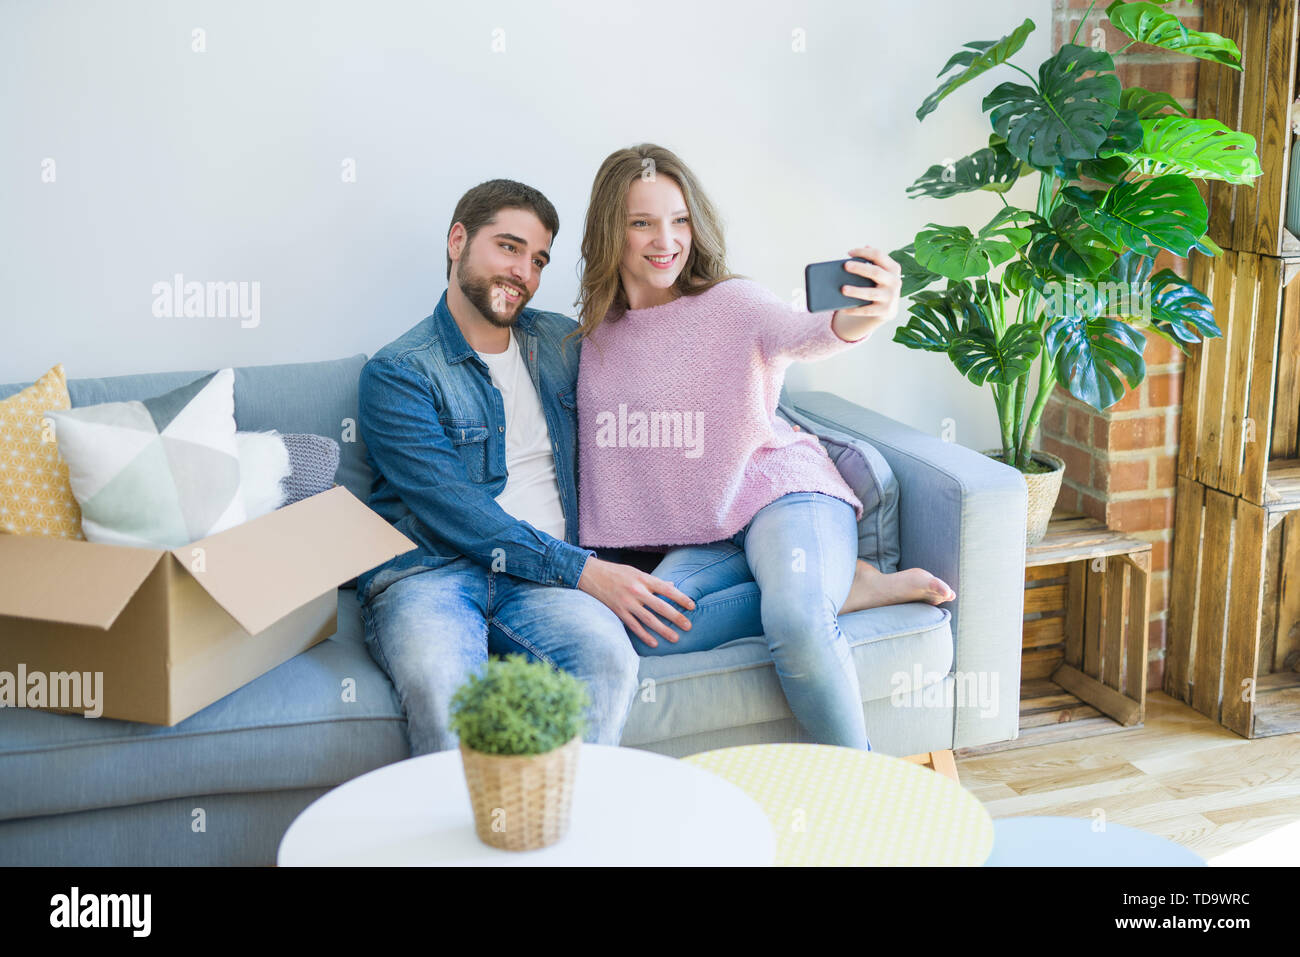 Young beautiful couple taking a selfie photo using smartphone sitting on the sofa smiling very happy for moving to a new home - Stock Image